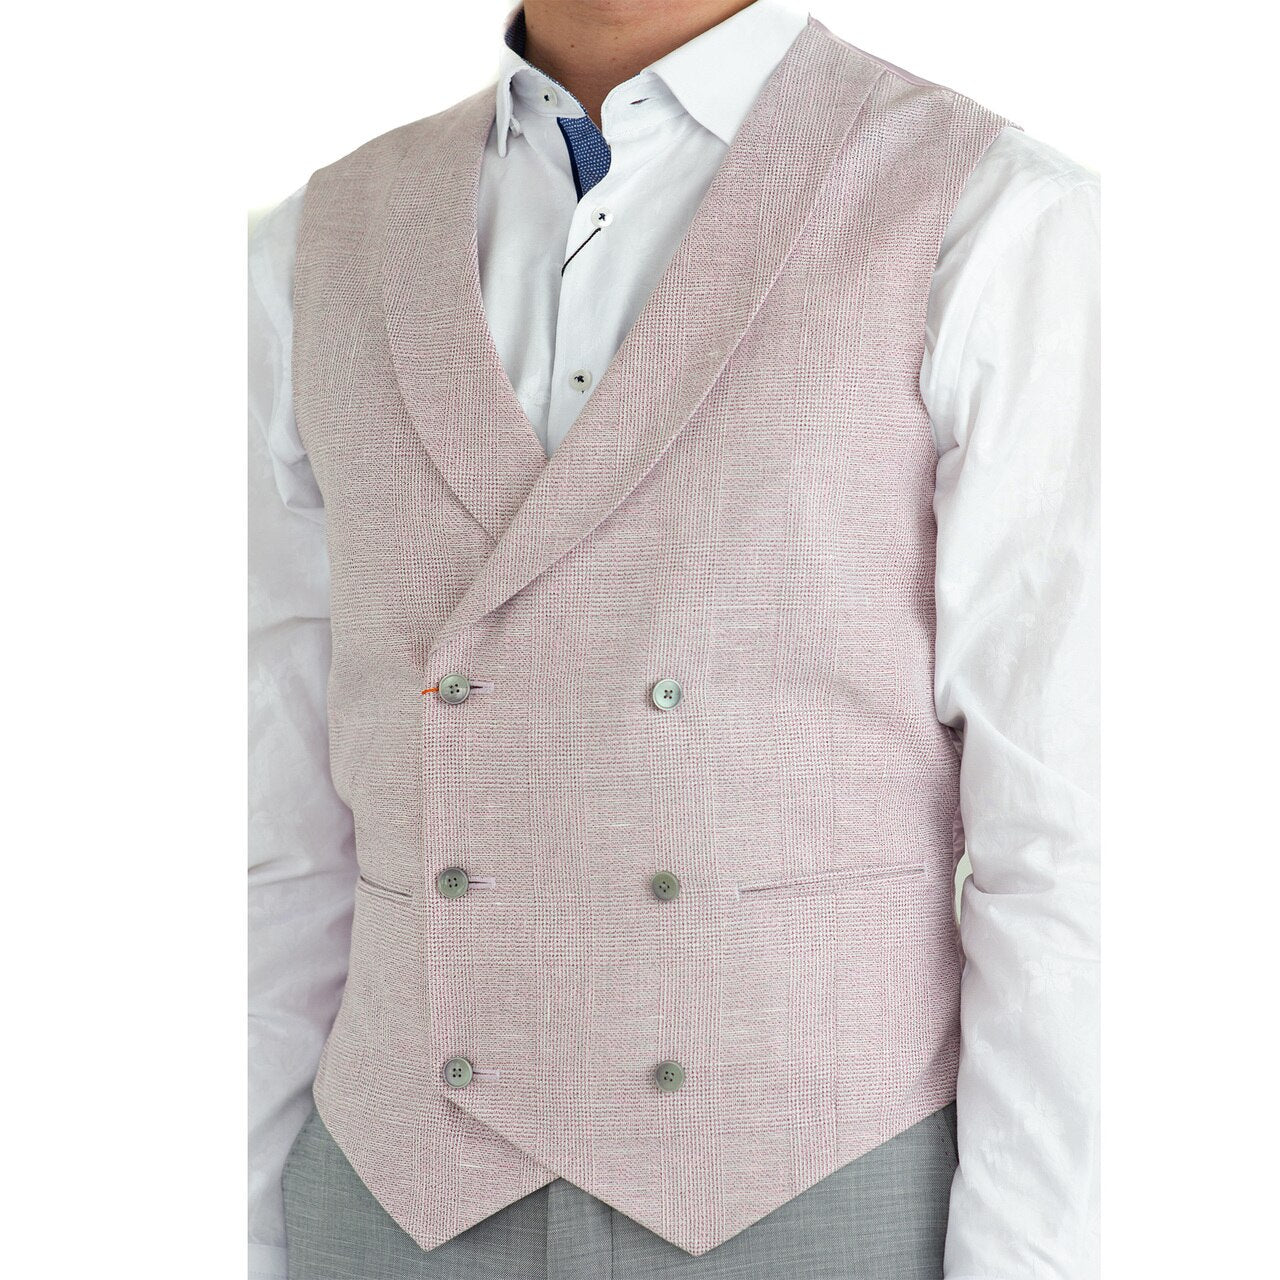 Votrin Double-Breasted Vest - Pink